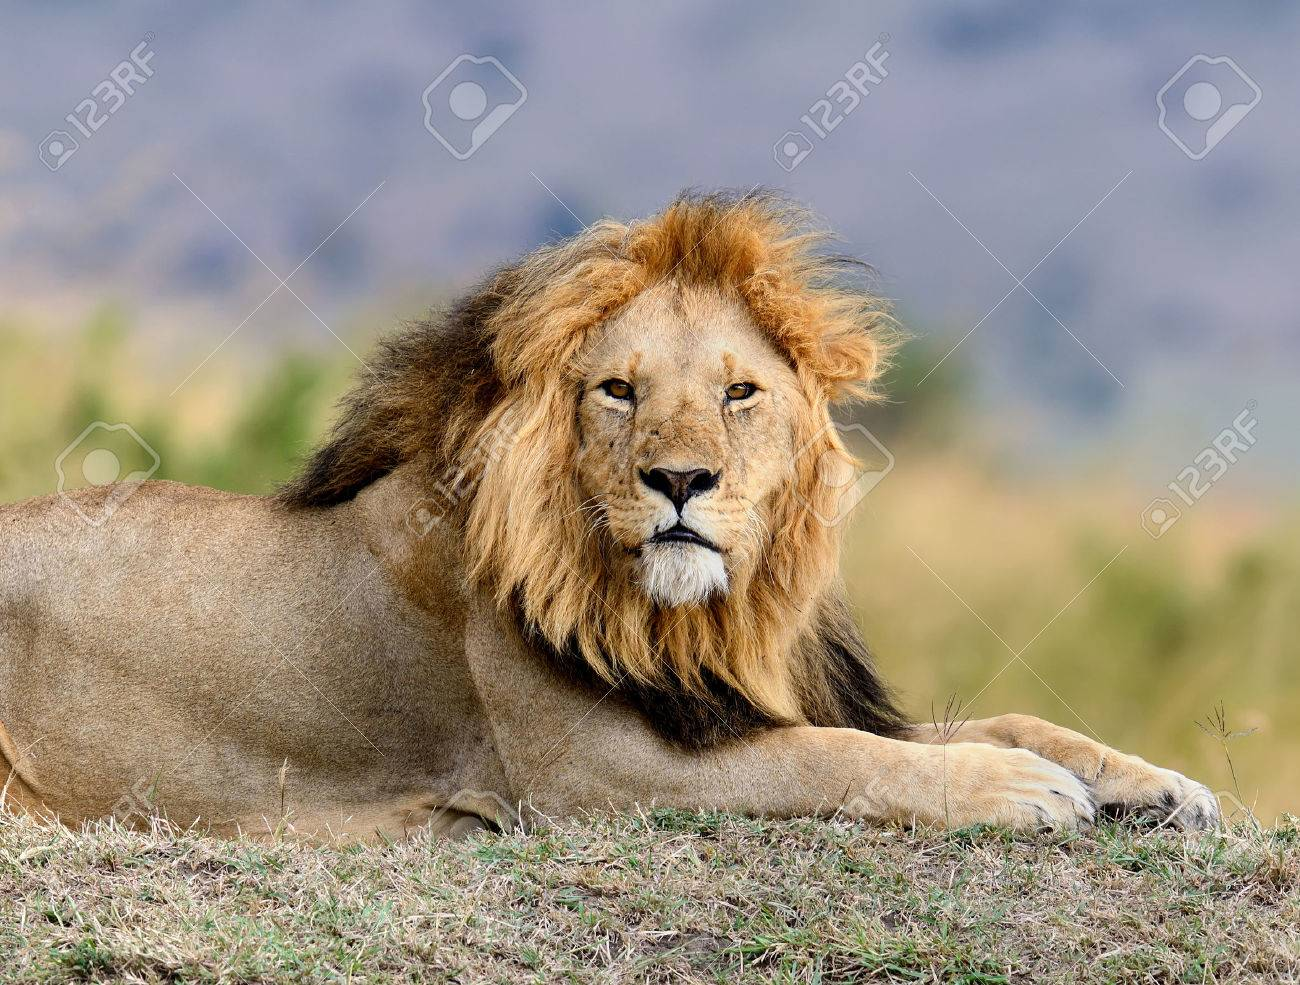 Close lion in National park of Kenya, Africa Standard-Bild - 47628616